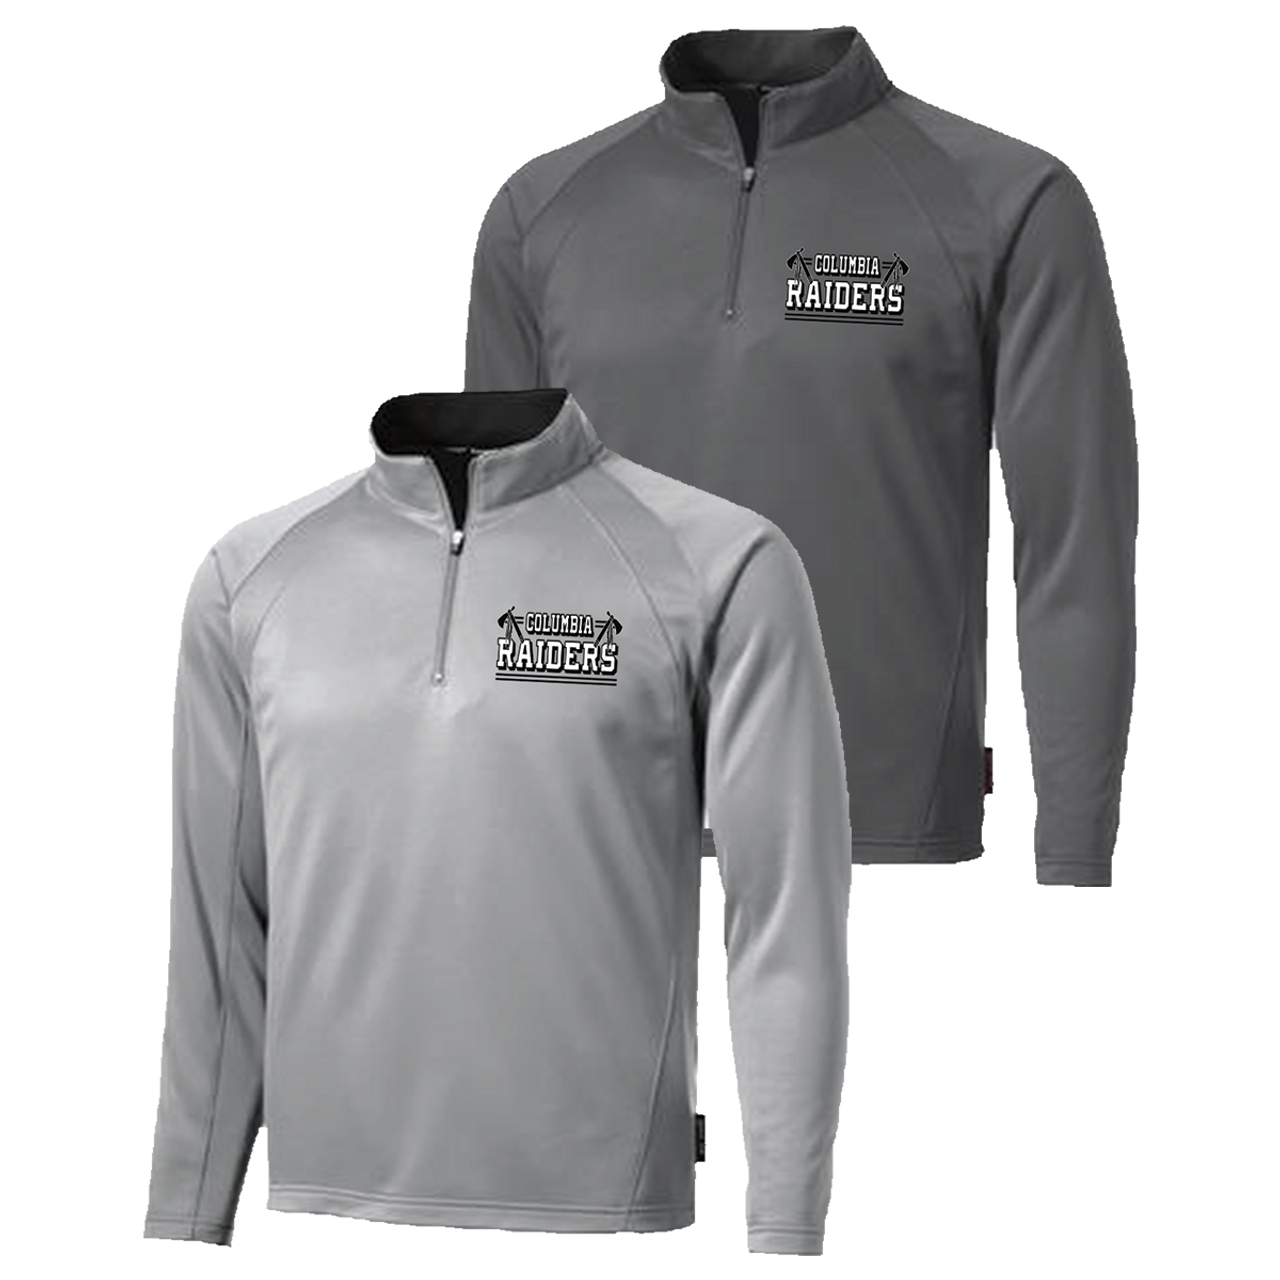 865c4141043a6 Columbia Raiders 1 4 Zip Pullover (S136) - RycoSports